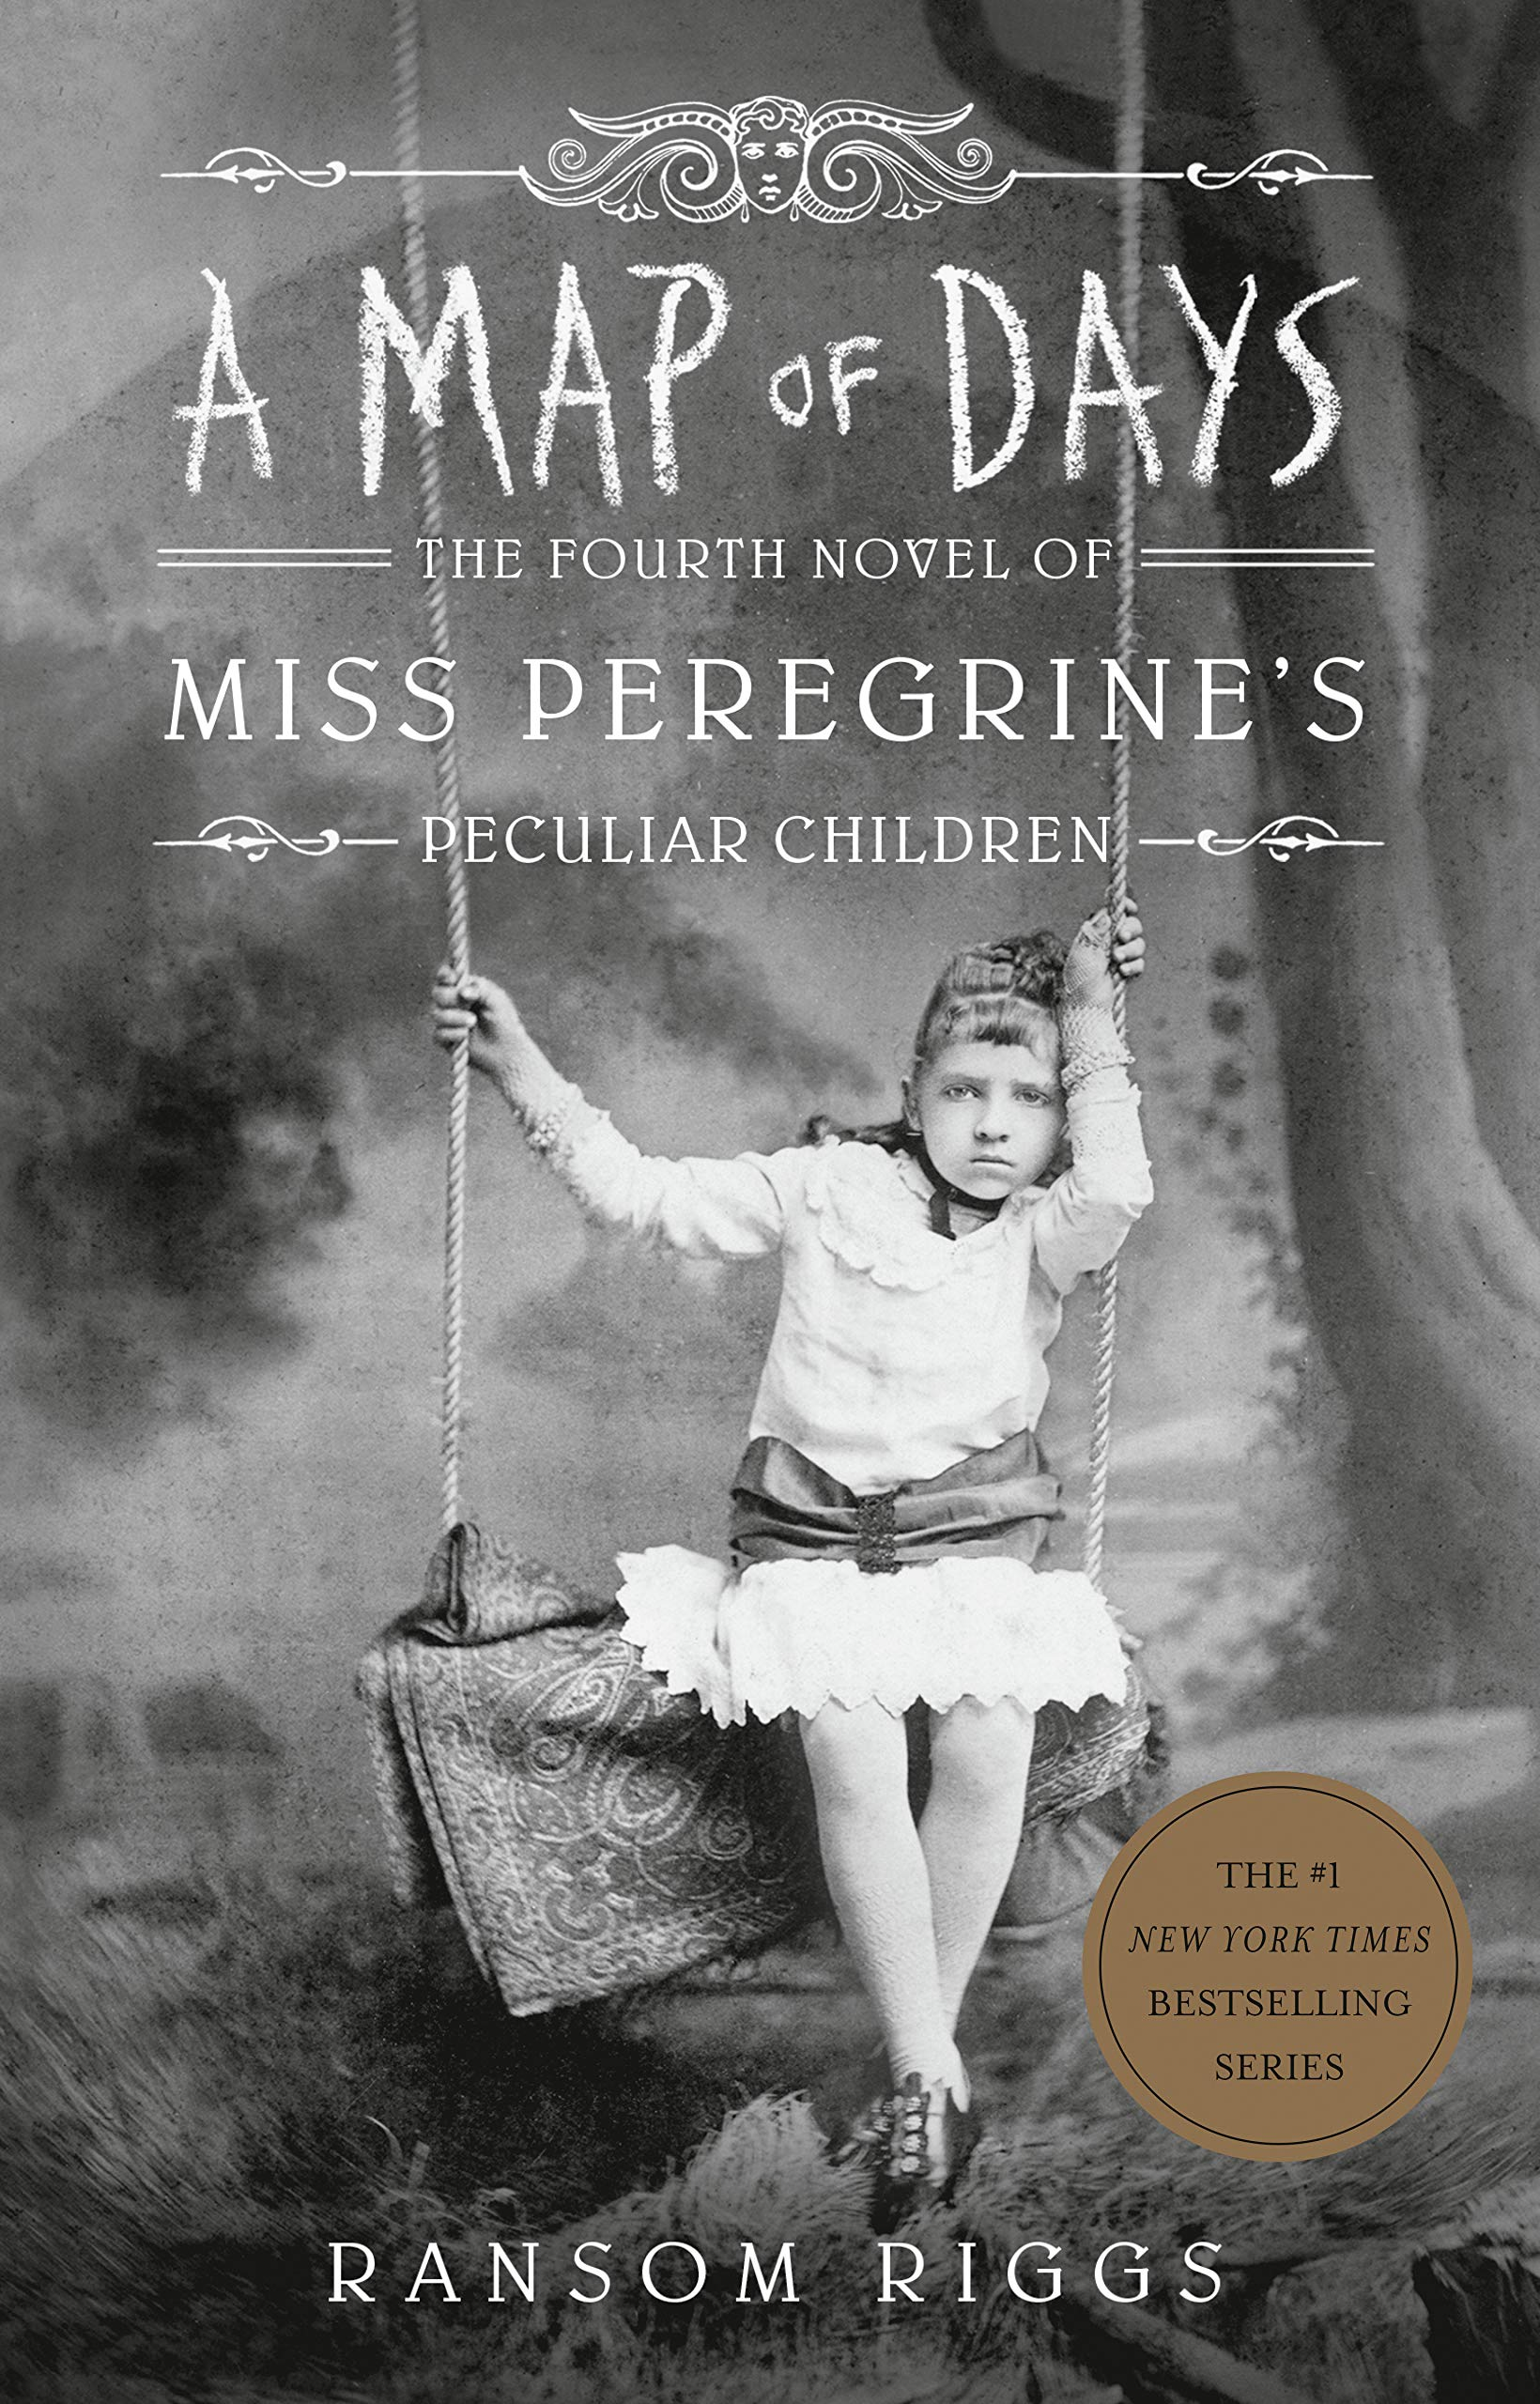 Amazon.com: A Map of Days (Miss Peregrine's Peculiar Children)  (9780735231498): Riggs, Ransom: Books